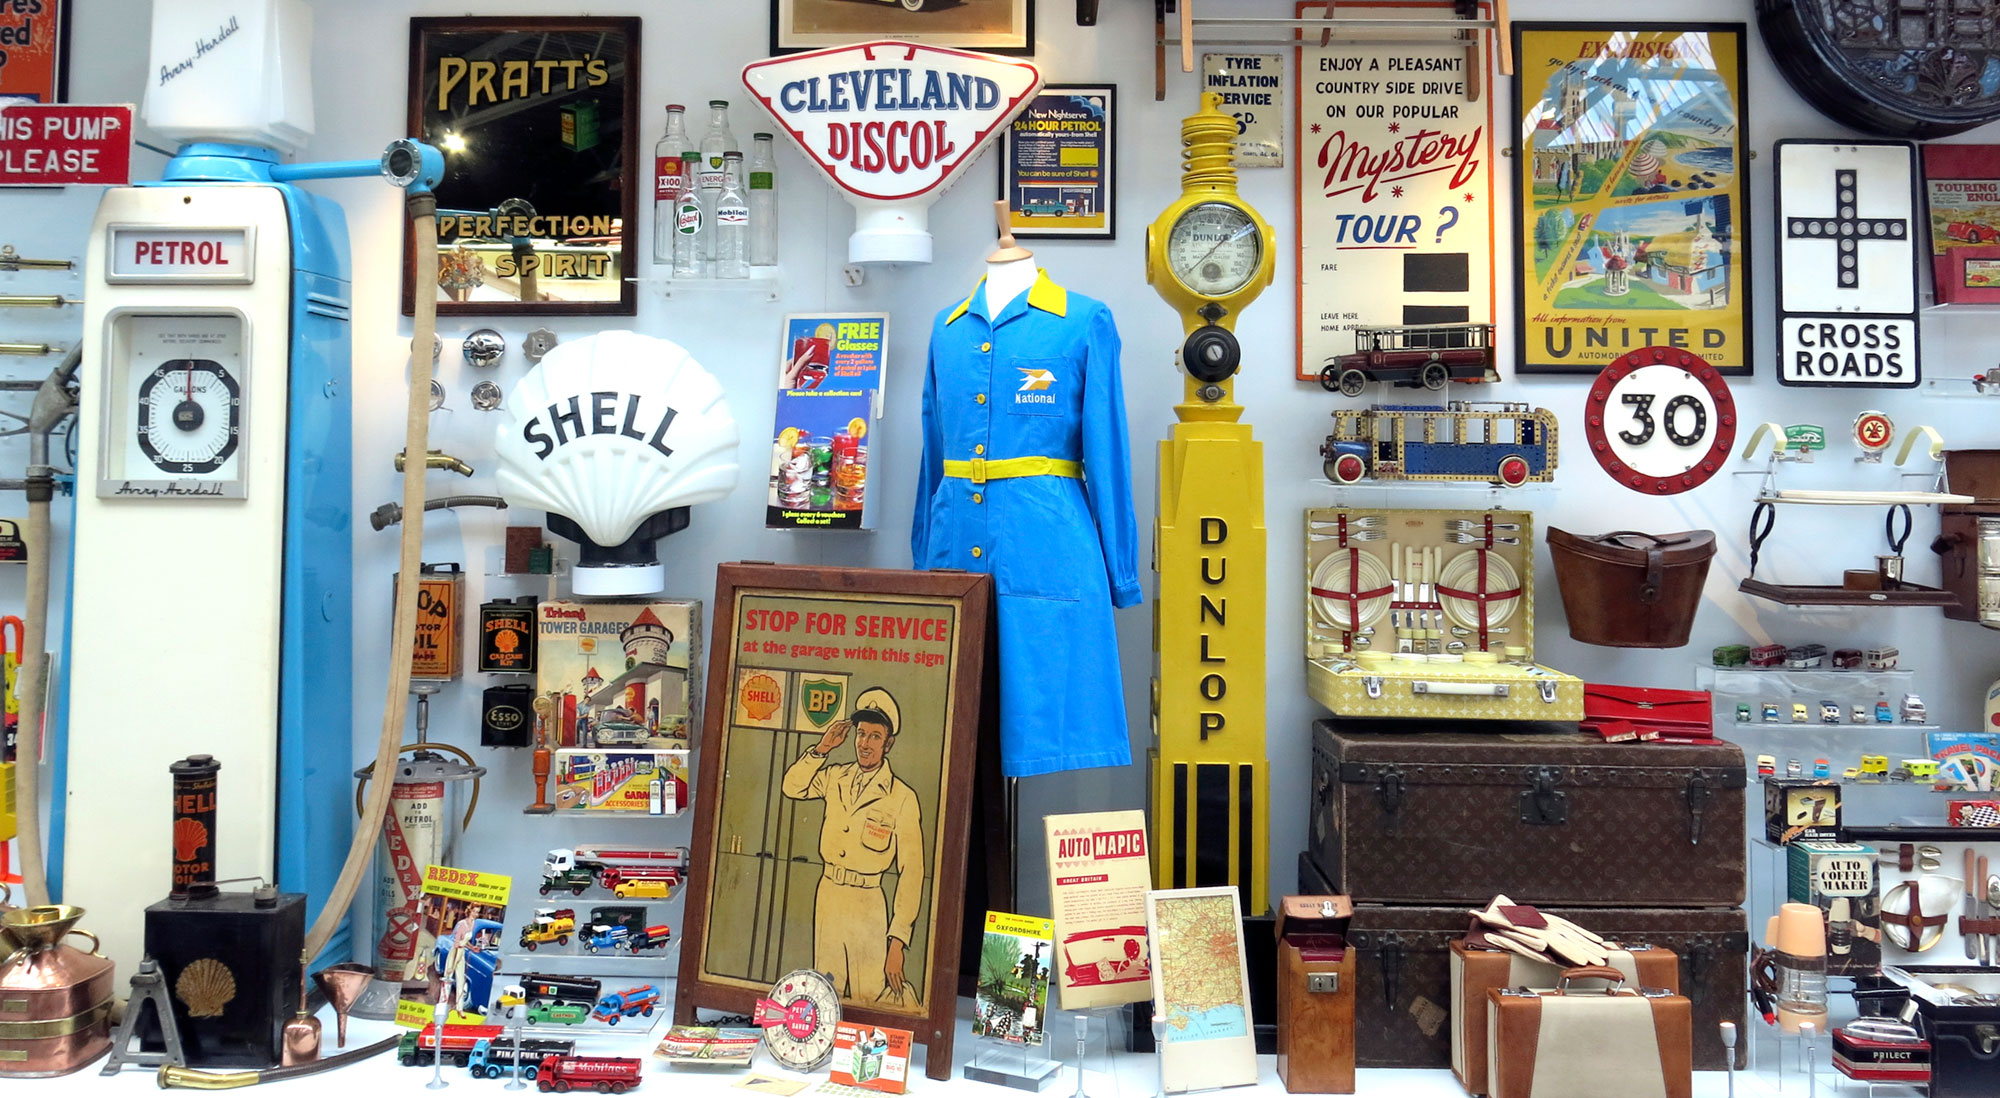 A museum showcase containing early motoring objects